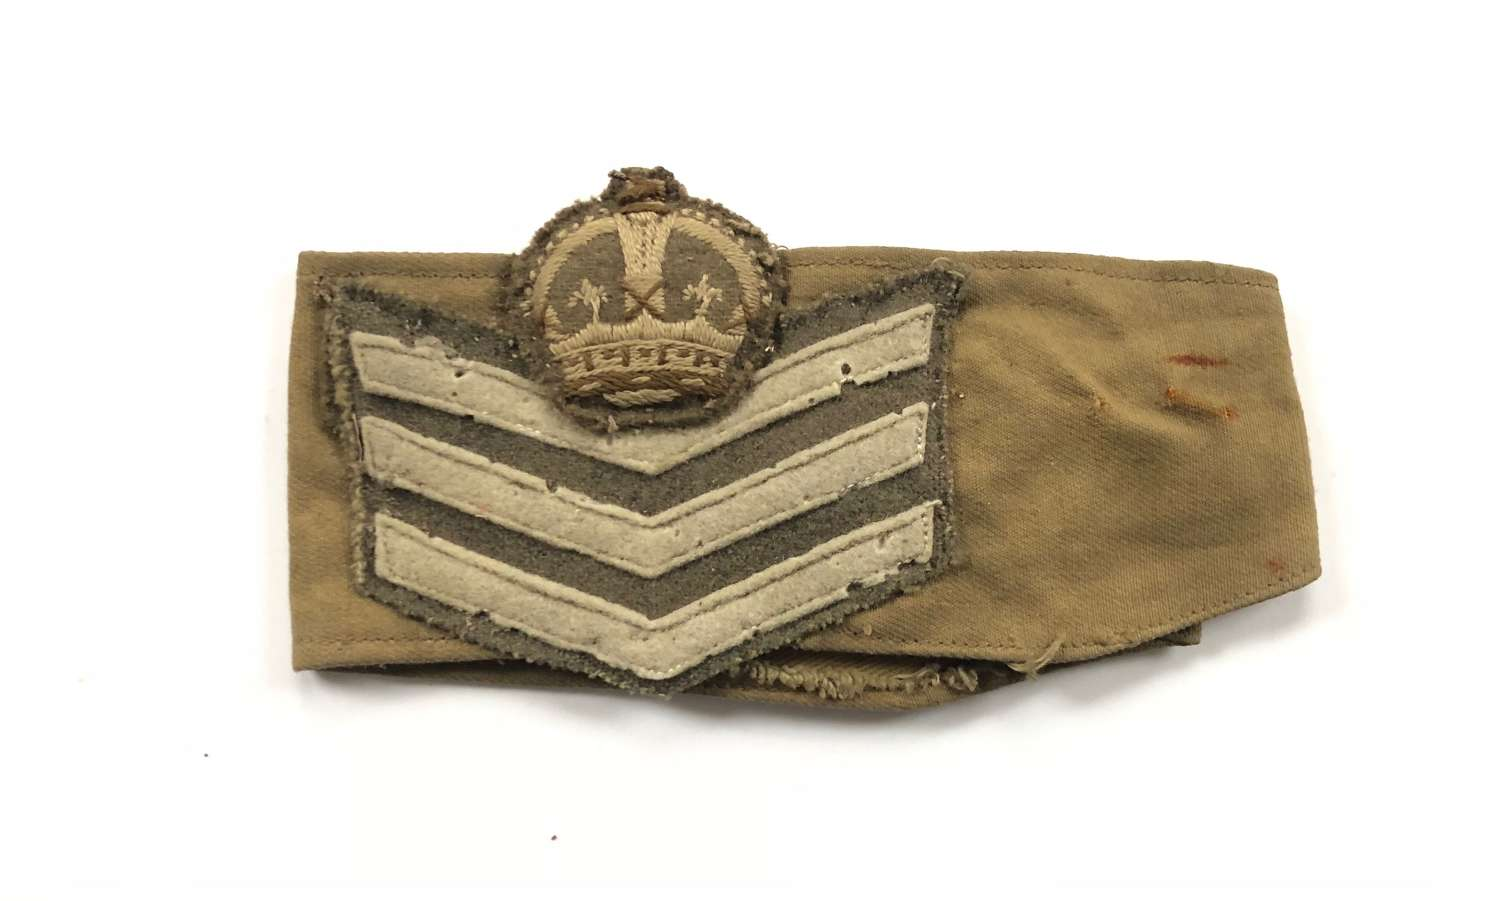 WW2 Period Sergeant Major Rank Armband.